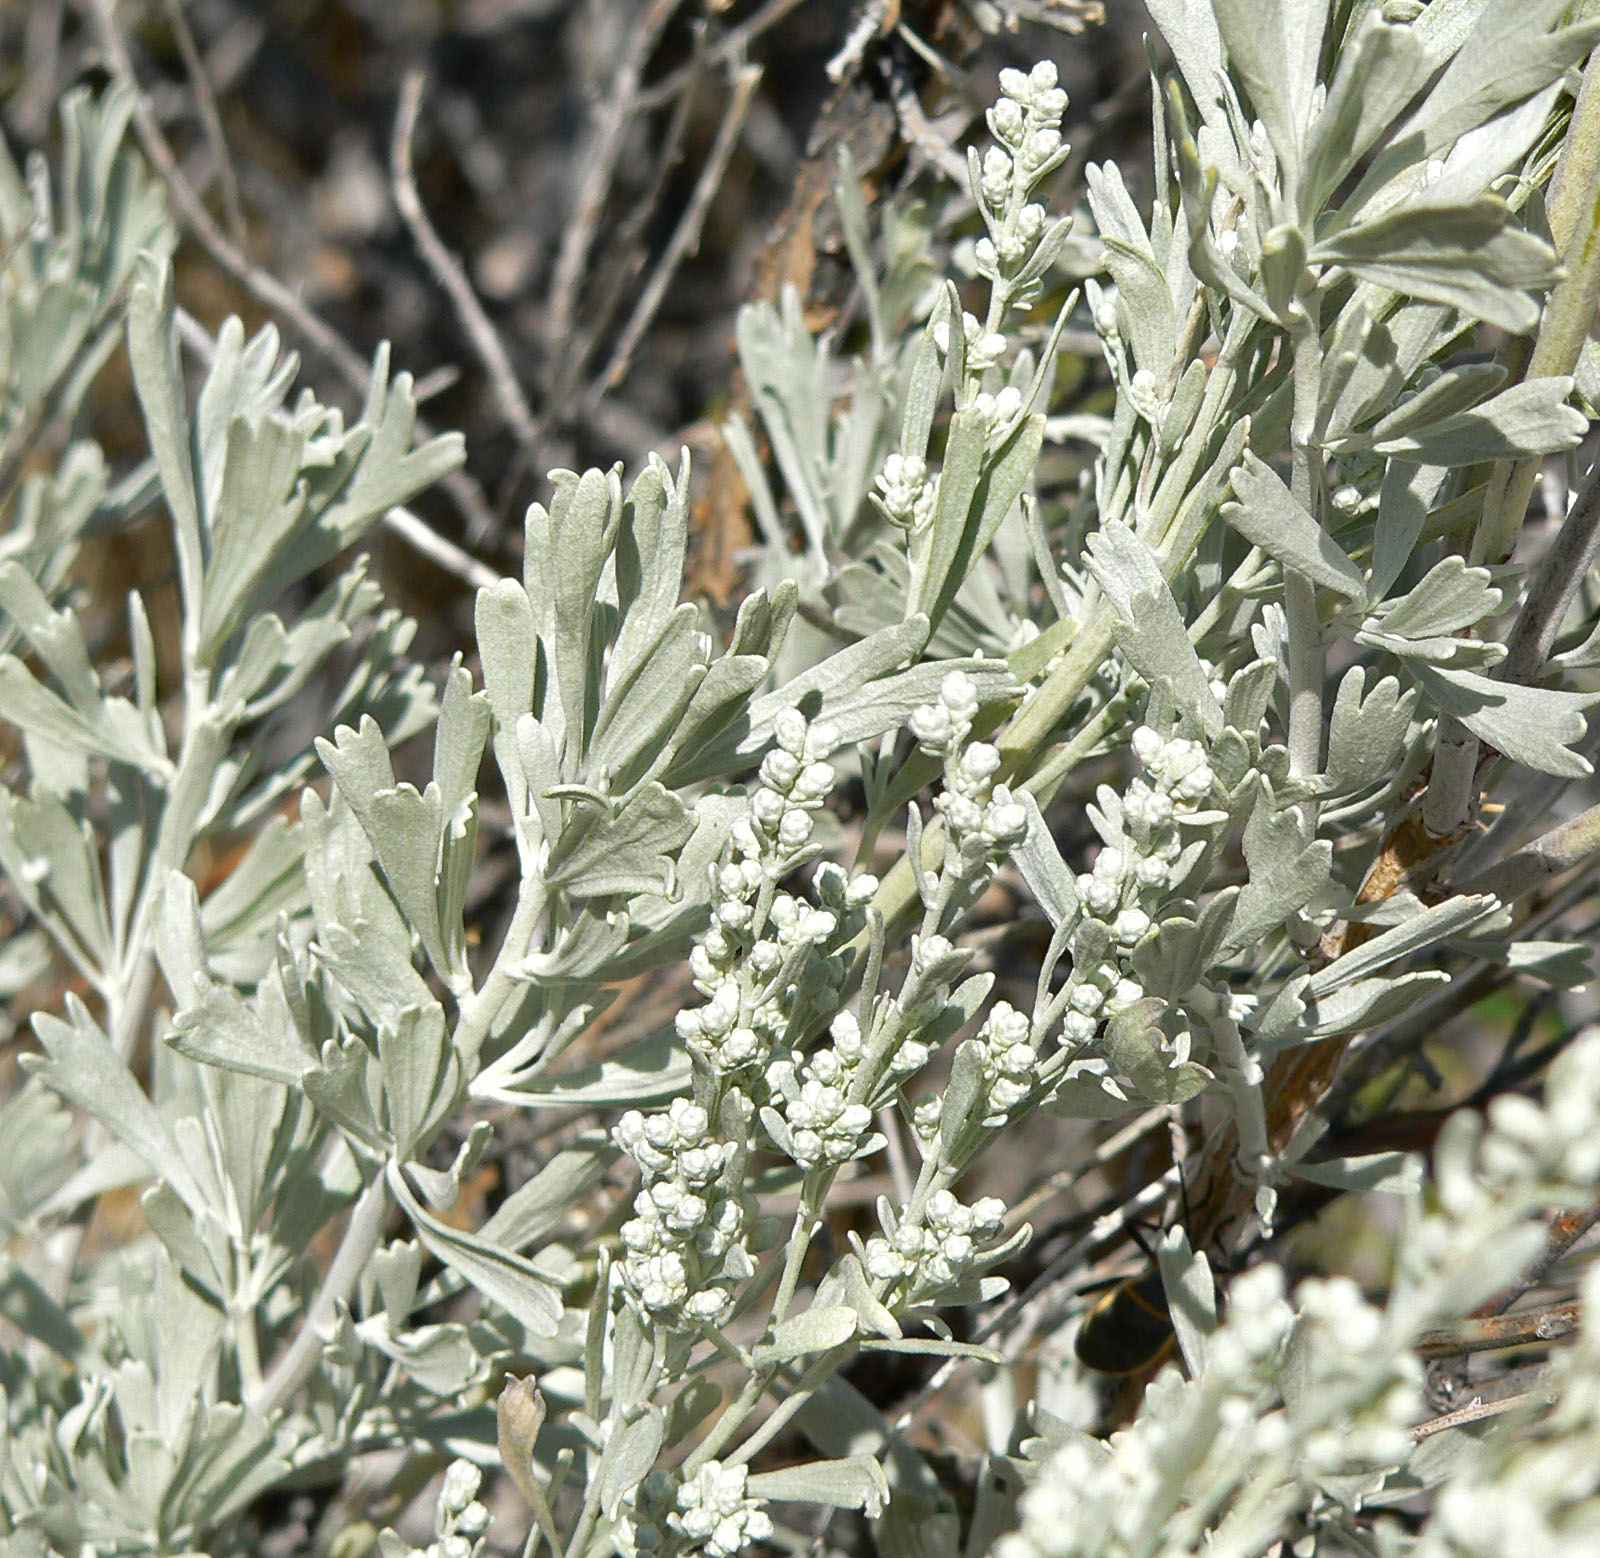 File:Artemisia tridentata 2.jpg - Wikipedia, the free encyclopedia